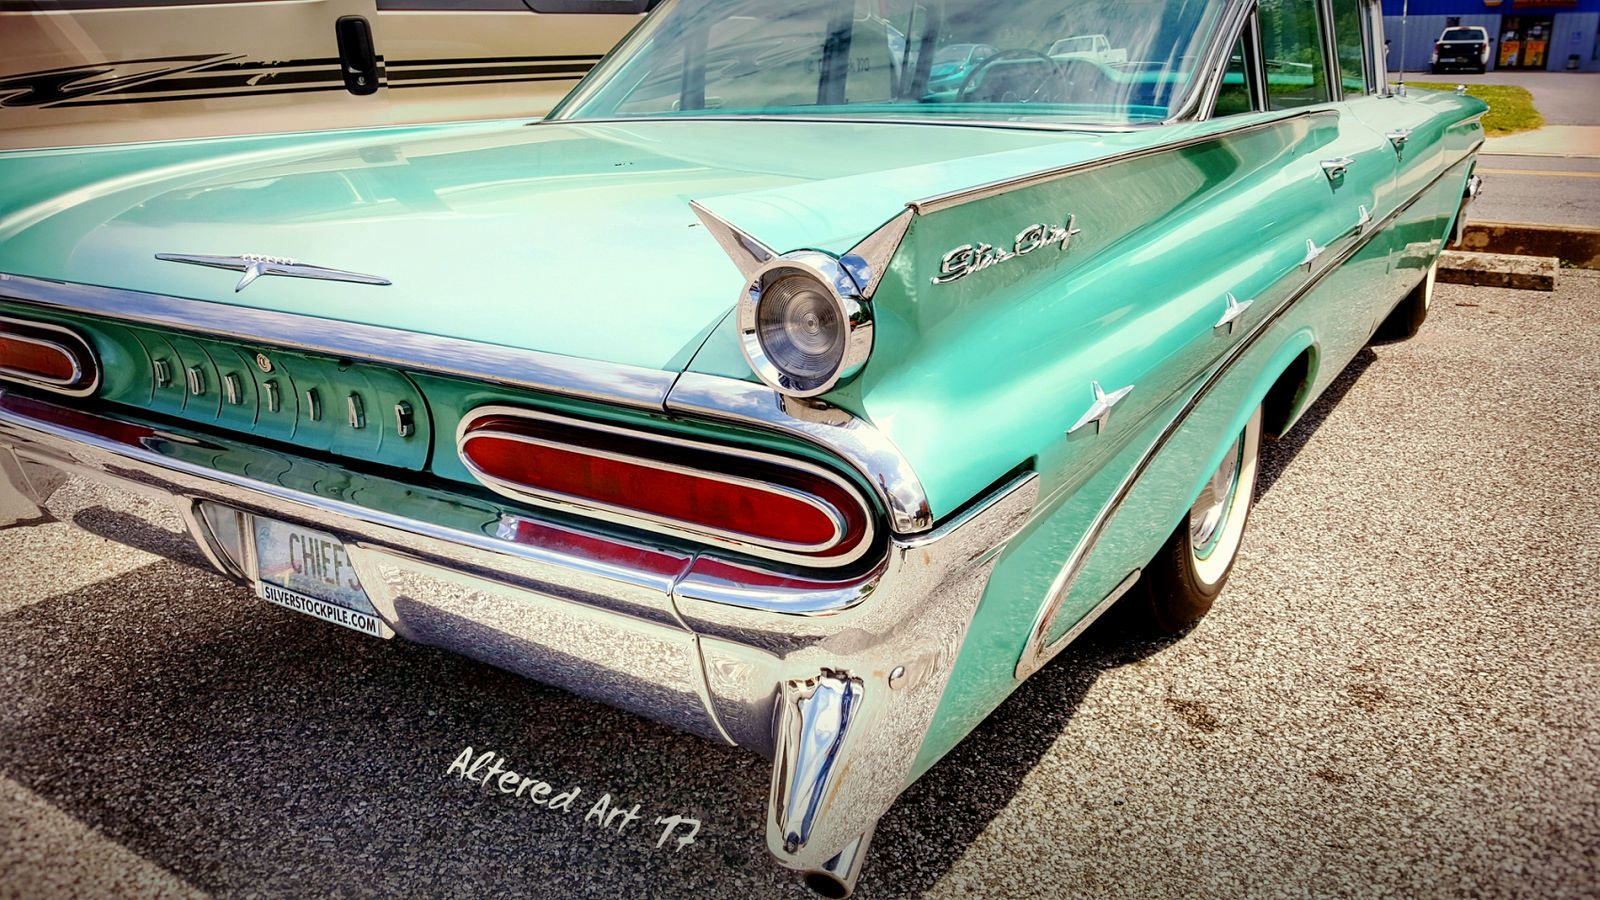 Fins on a Pontiac Starchief! Cool old cars